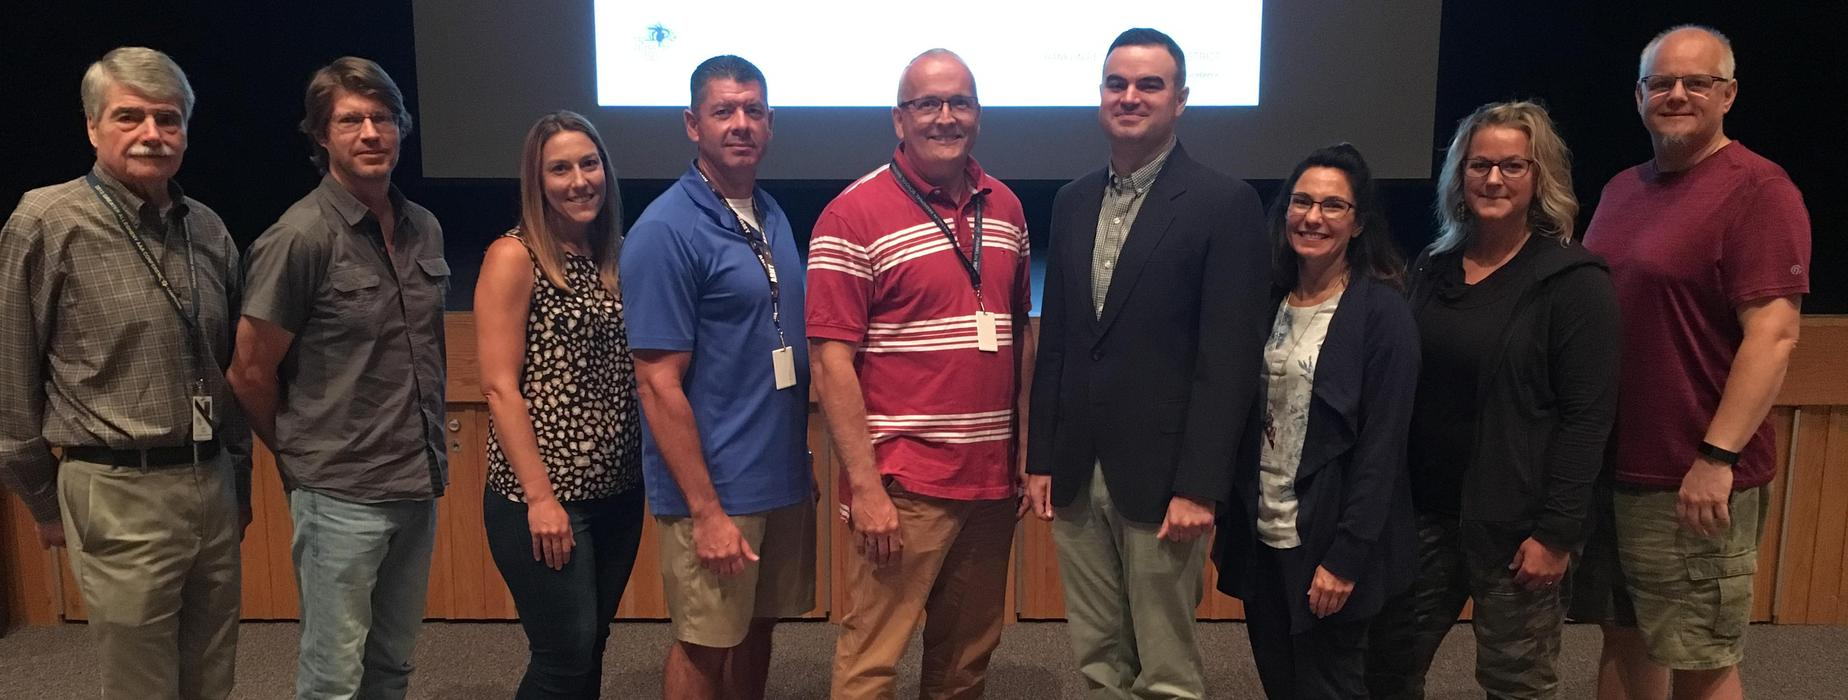 U.S. Army Major Alexander Kerr, a 2001 FRSH graduate,  joins FR's proud military veterans who are currently members of the FR staff and School Board.  Major Kerr was the guest speaker at FR's Opening Day assembly for that officially kicked off the 2019-20 school year for teachers and staff.